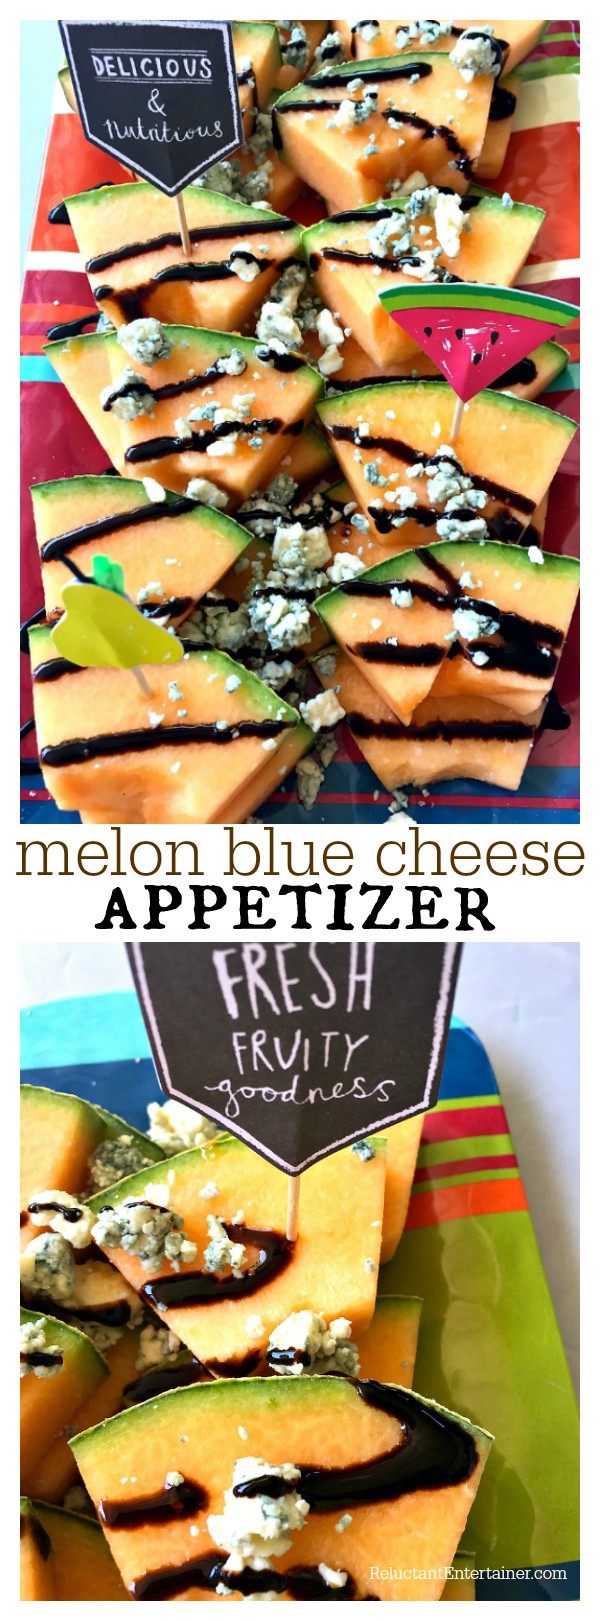 Melon Blue Cheese Appetizer